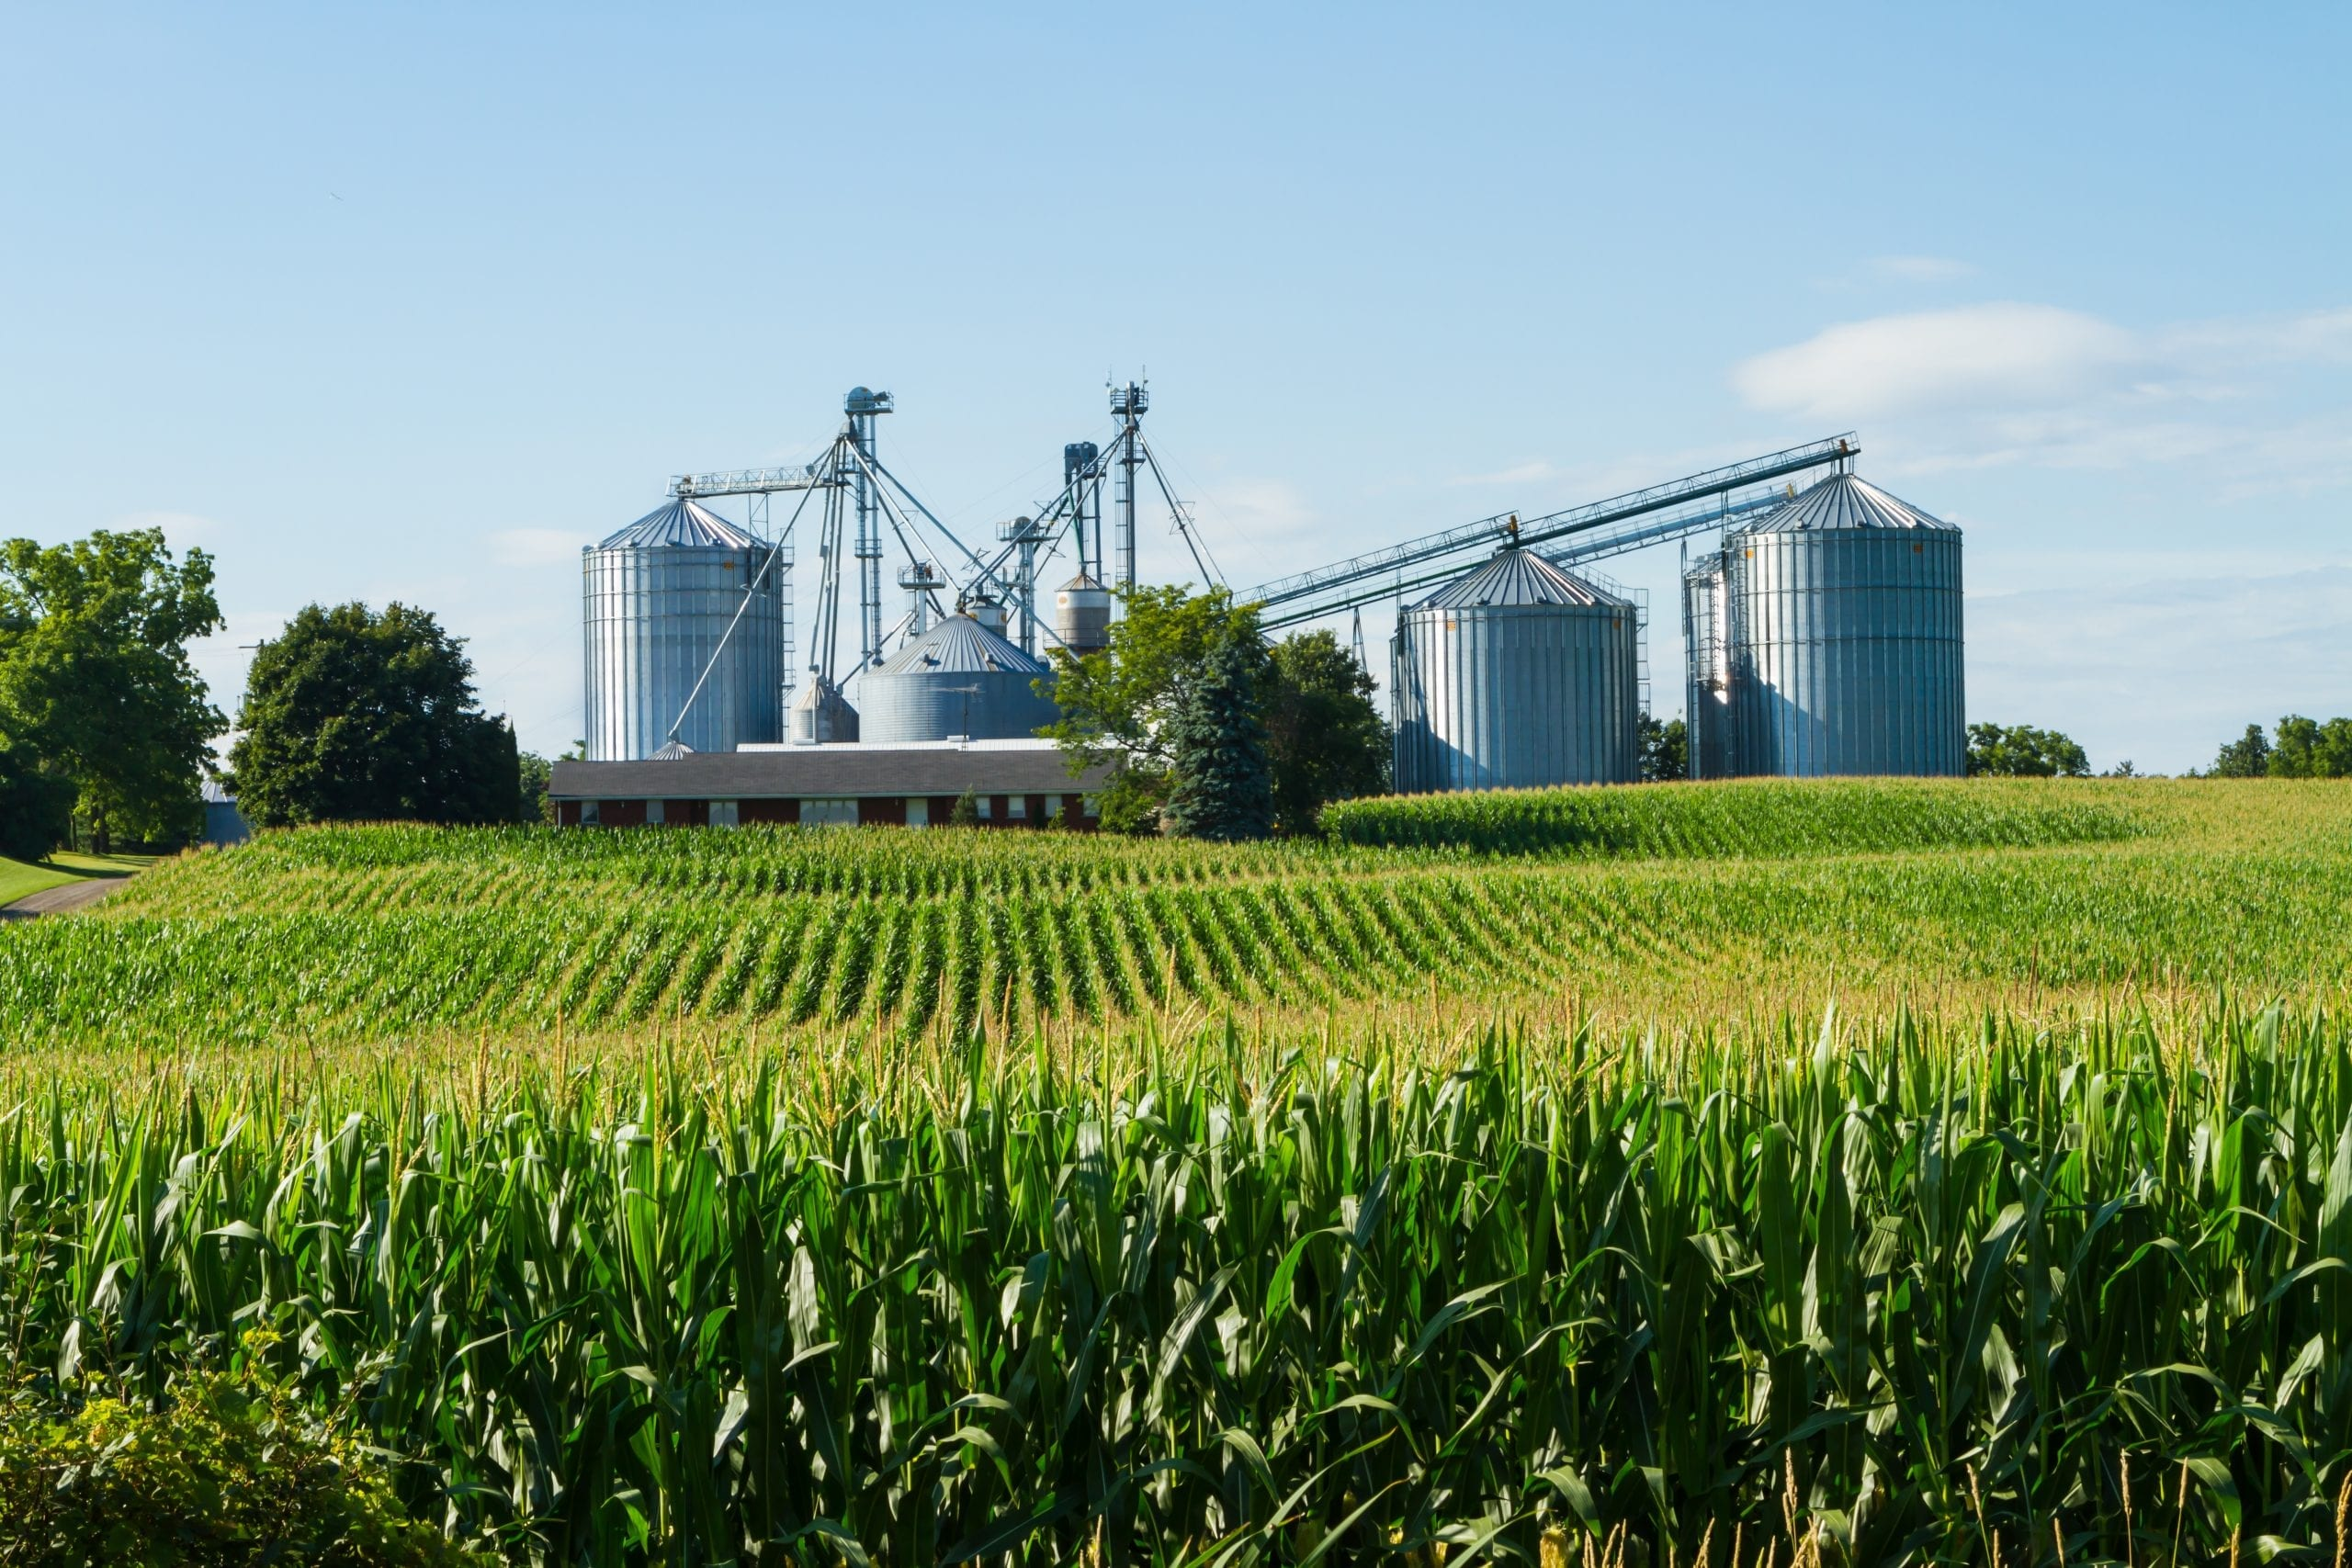 Cornfield,With,Silos,And,Farm,In,The,Distance